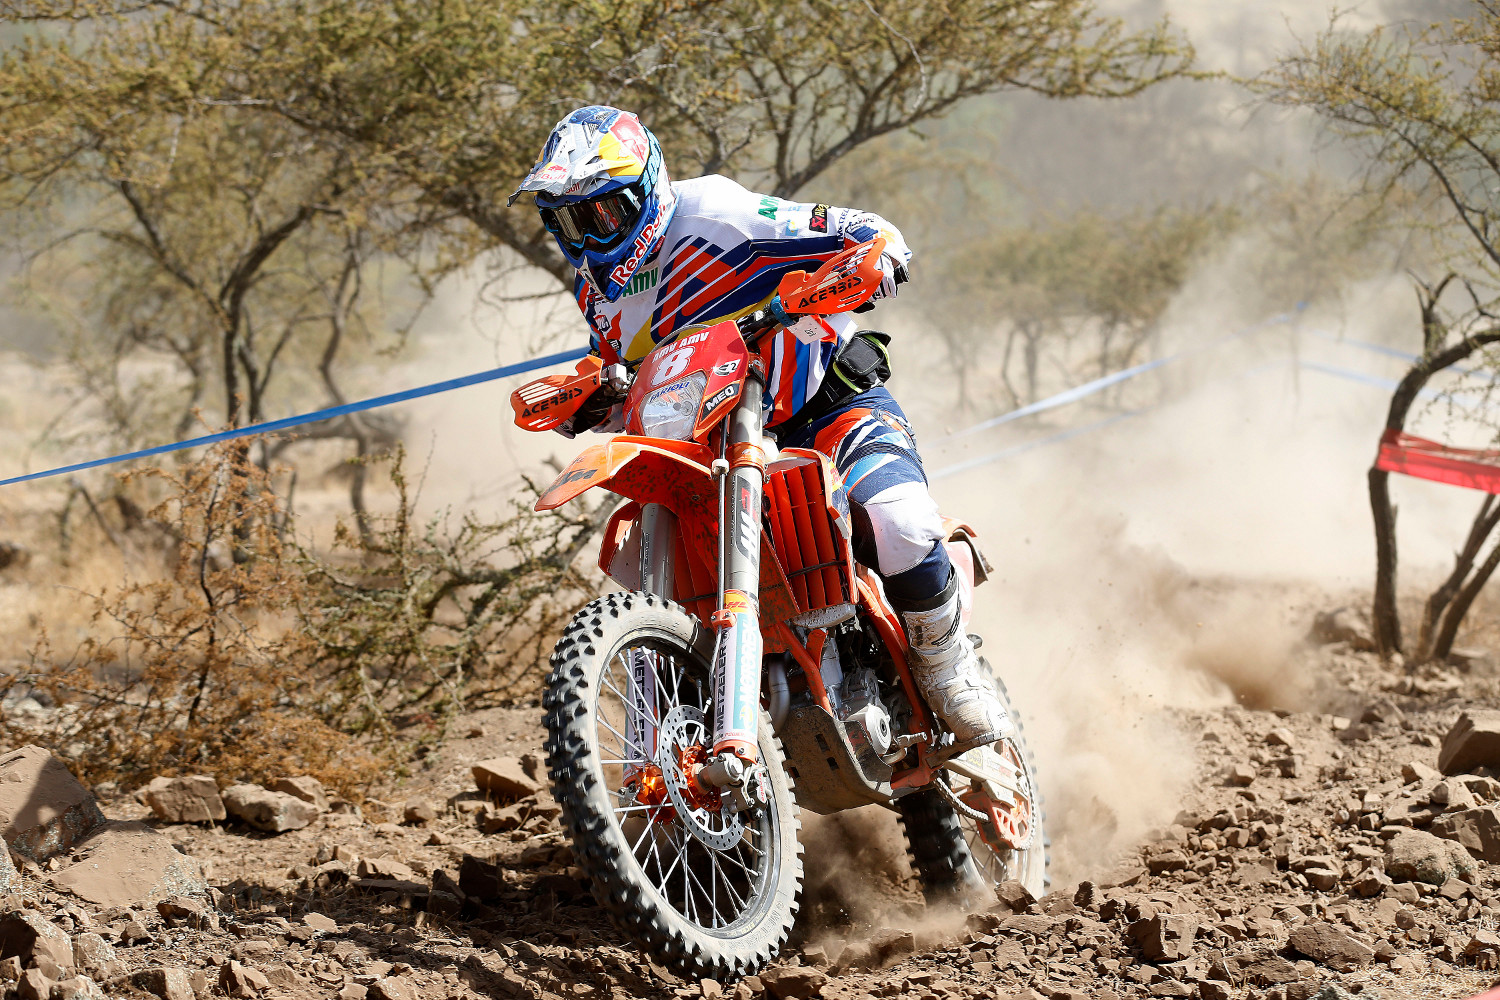 Ktm 350 Exc F >> Antoine Meo: French star delivers KTM's first 350 EXC-F powered EWC title - KTM BLOG